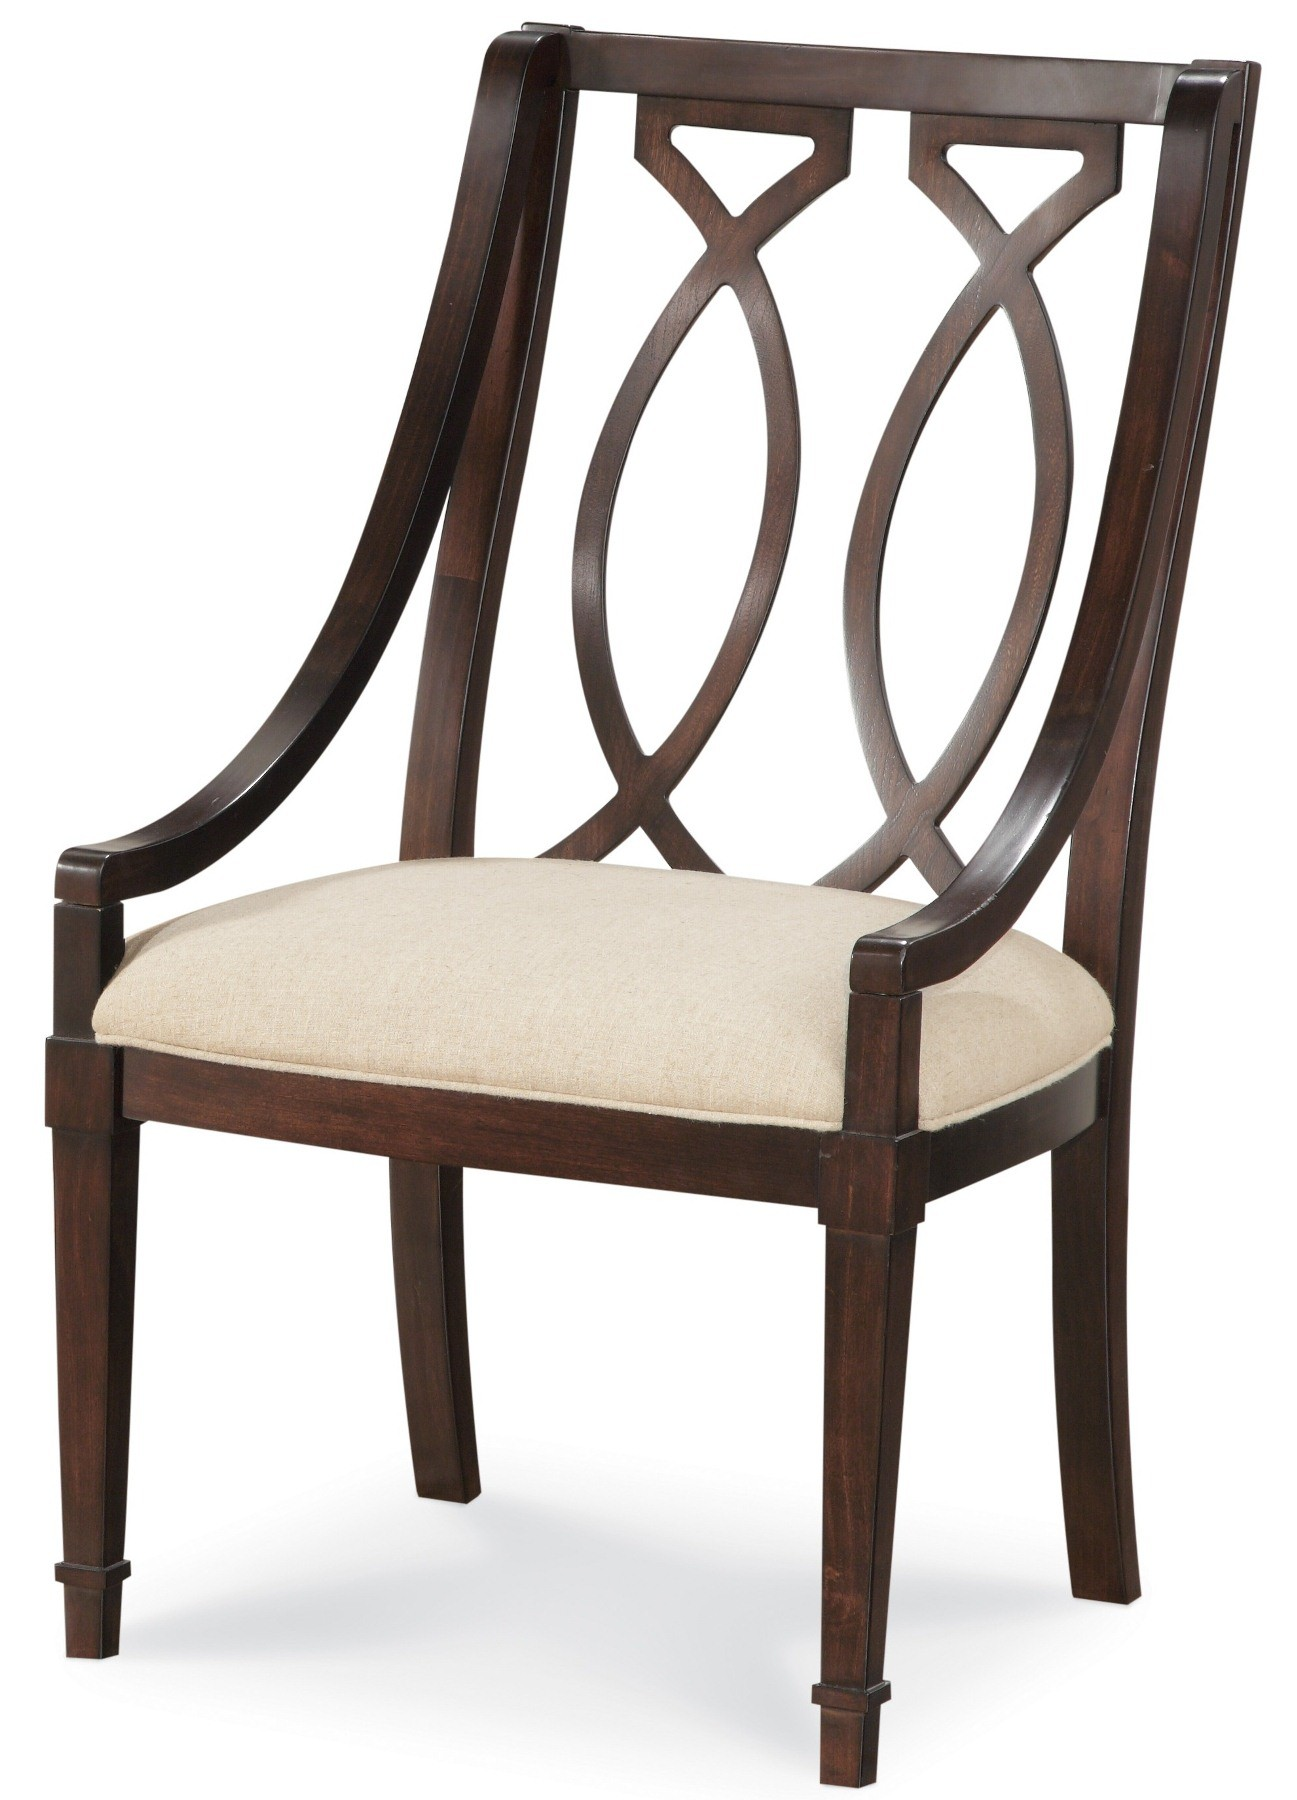 Wood Arm Chair Intrigue Wood Back Arm Chair Set Of 2 From Art 161205